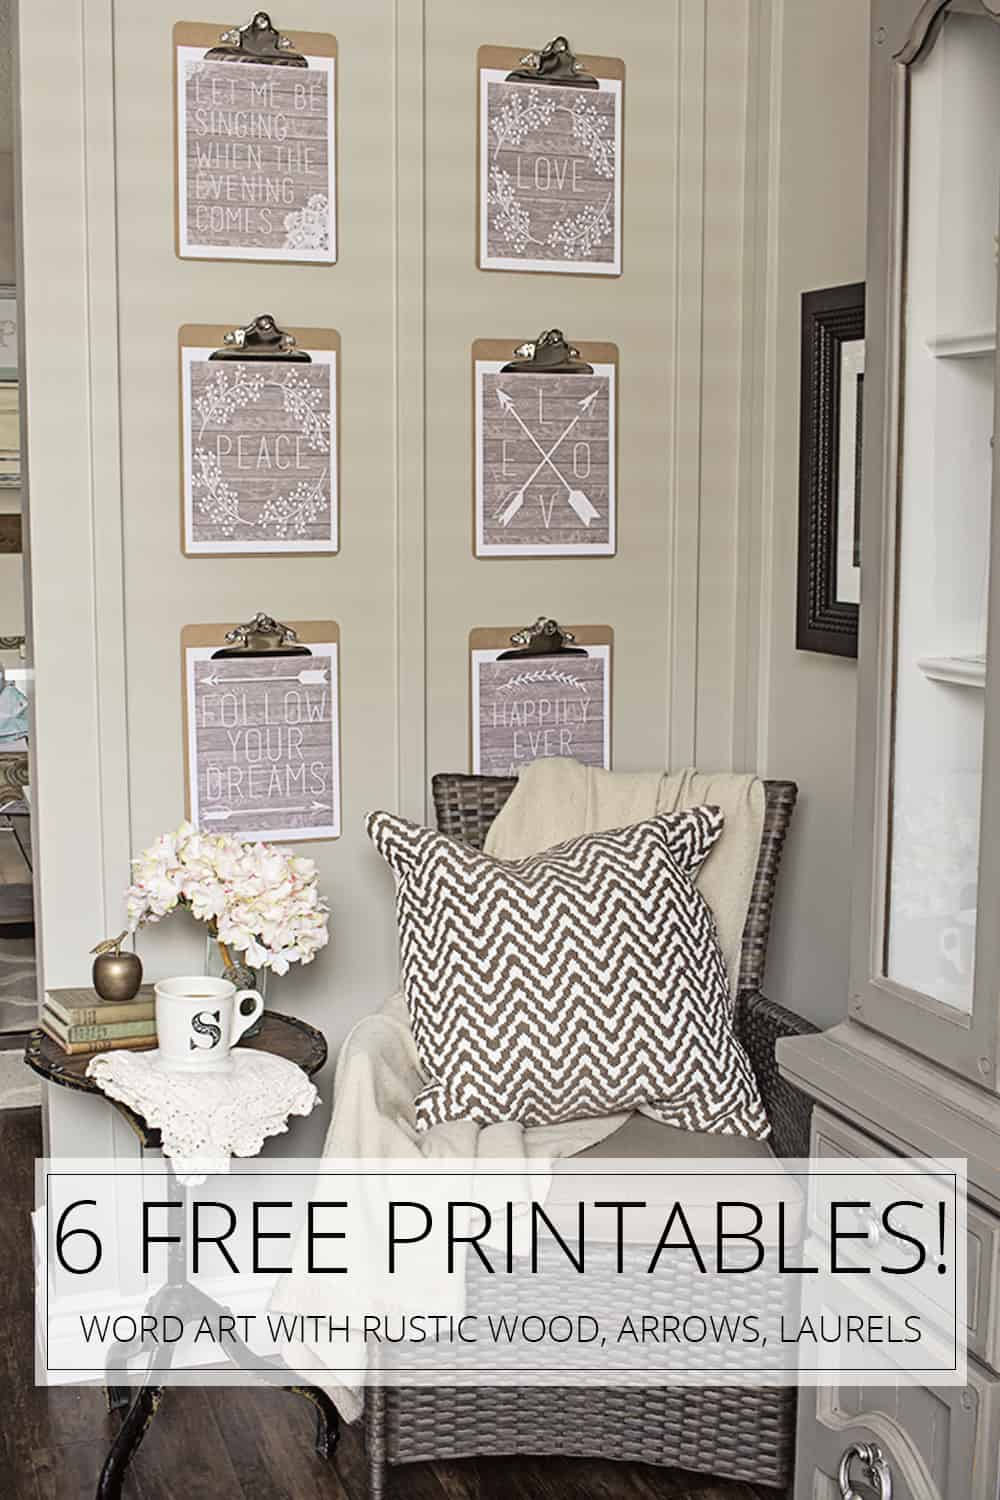 image about Printable Word Art called 6 Cost-free Farmhouse Printable Artwork Areas Phrase Artwork with Rustic